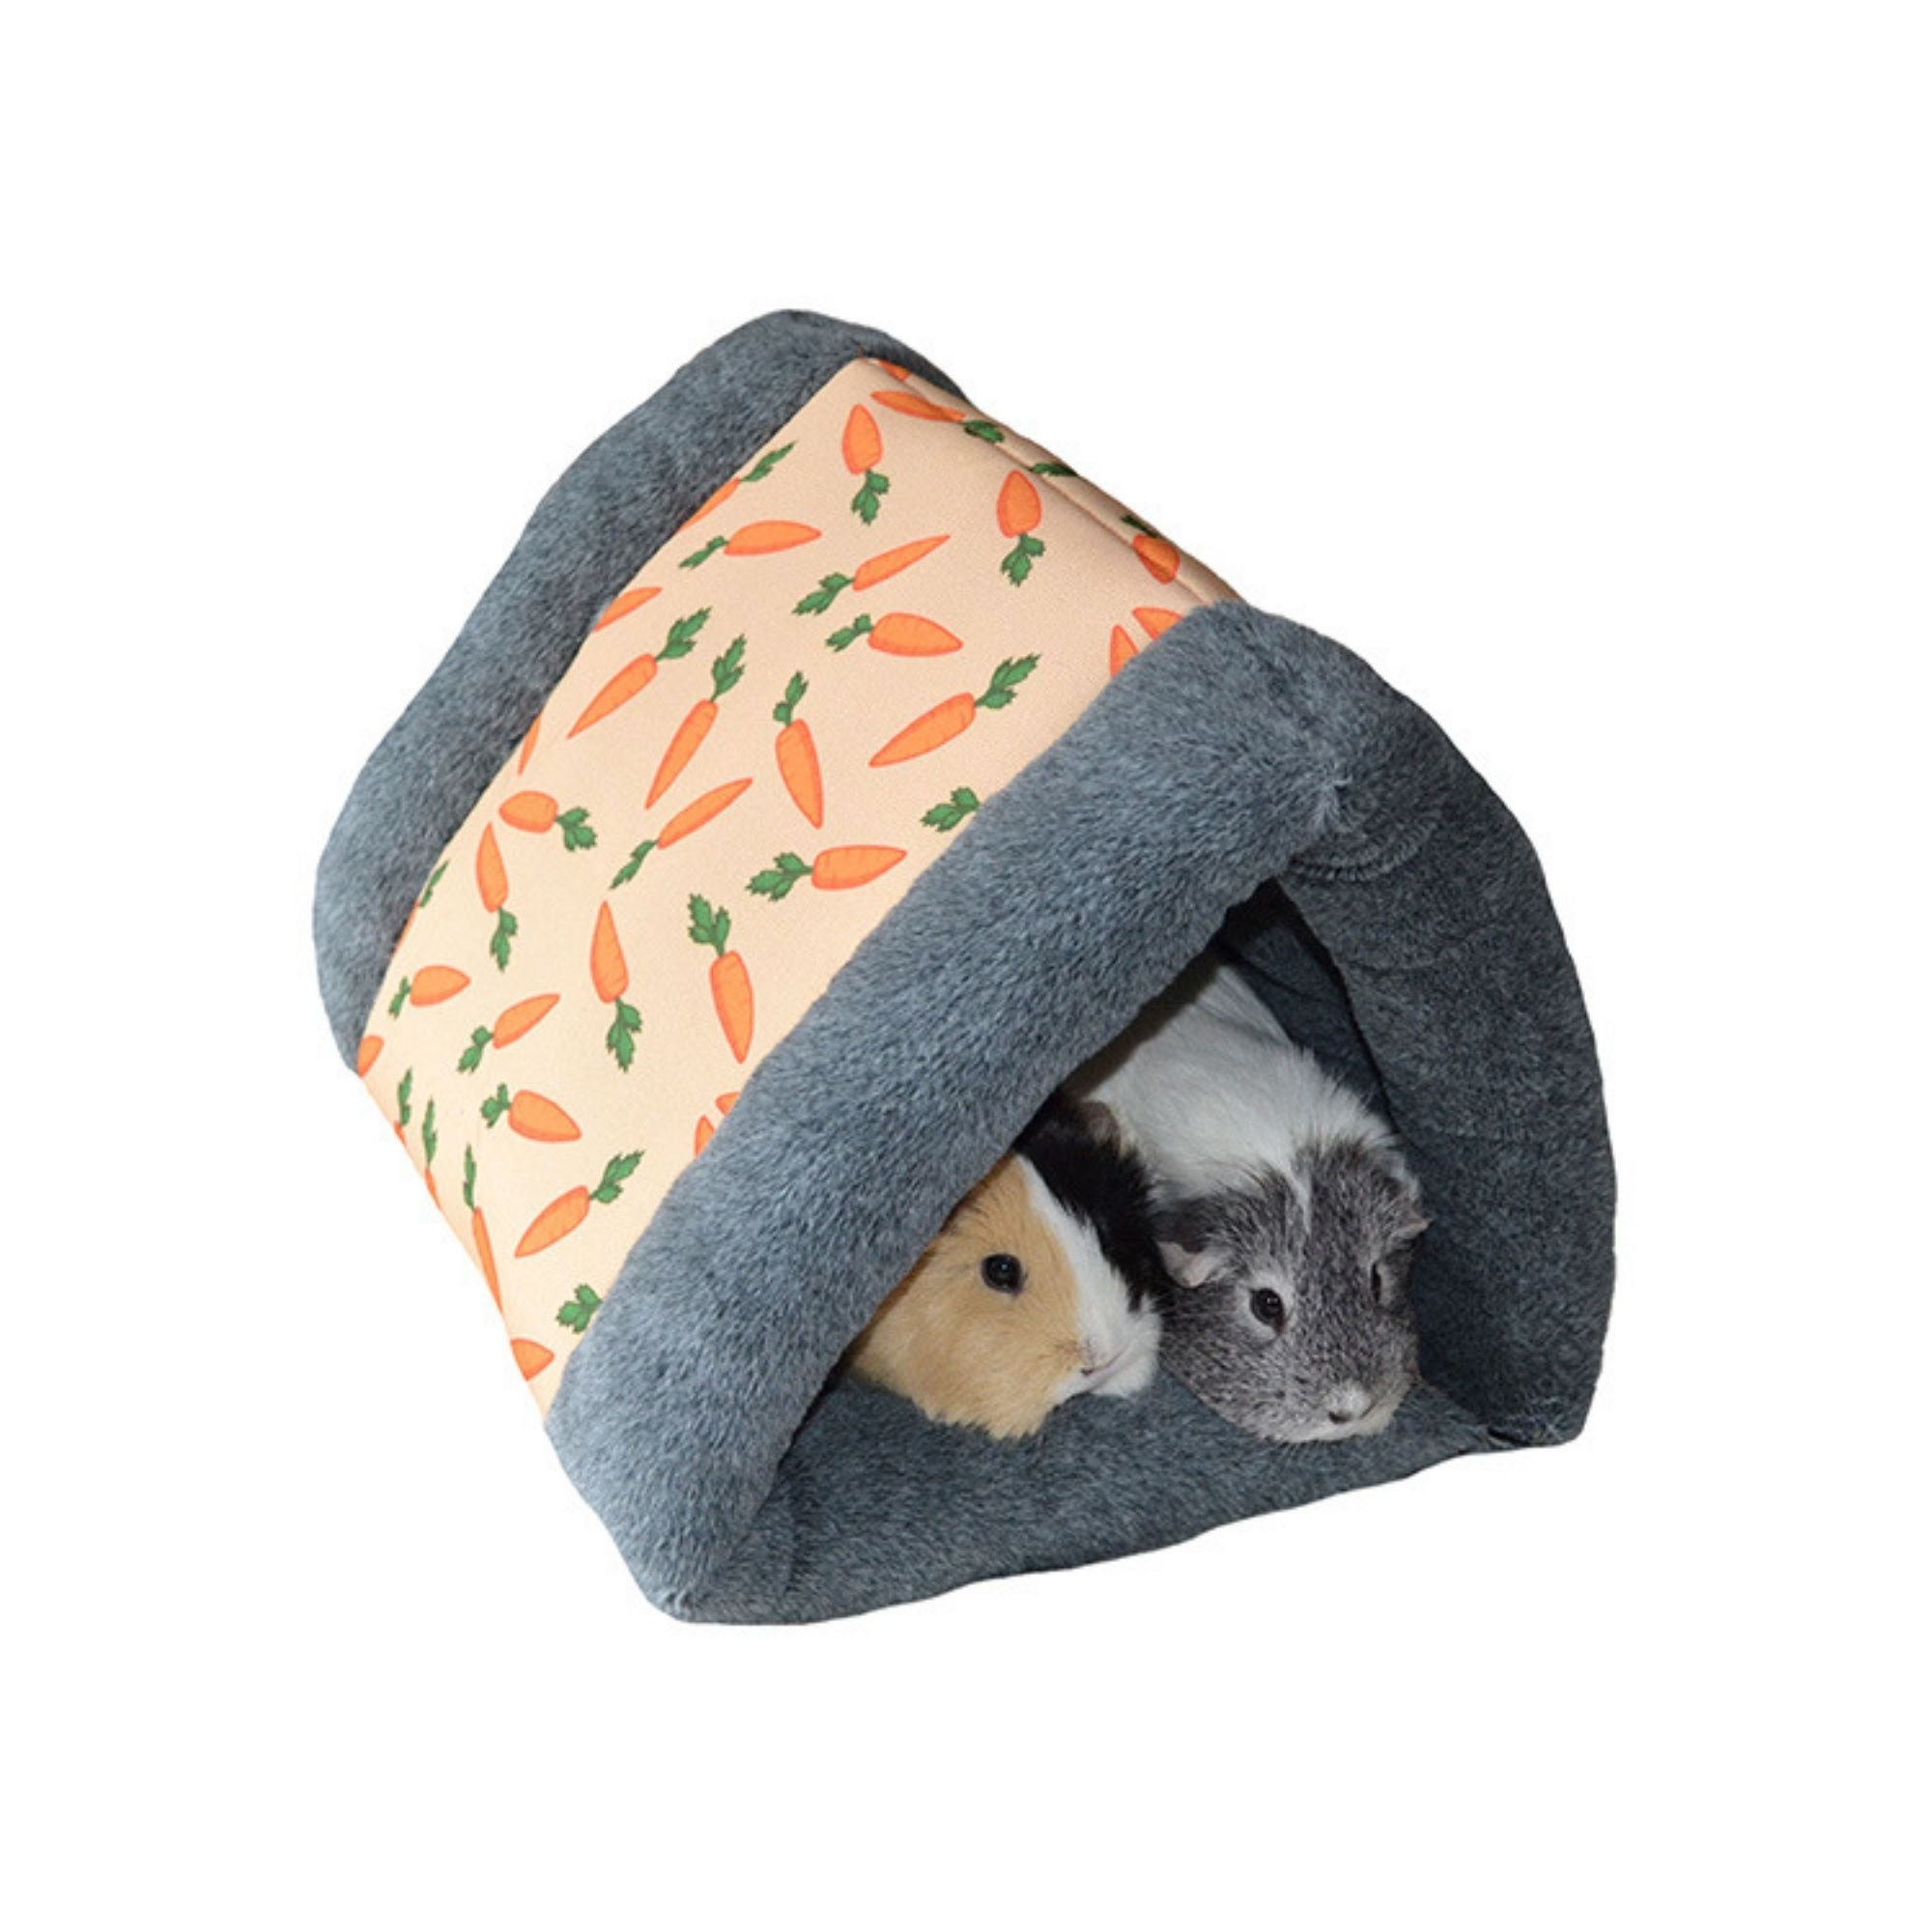 Rosewood Carrot Snuggle n' Sleep for Guinea Pigs | Barks & Bunnies